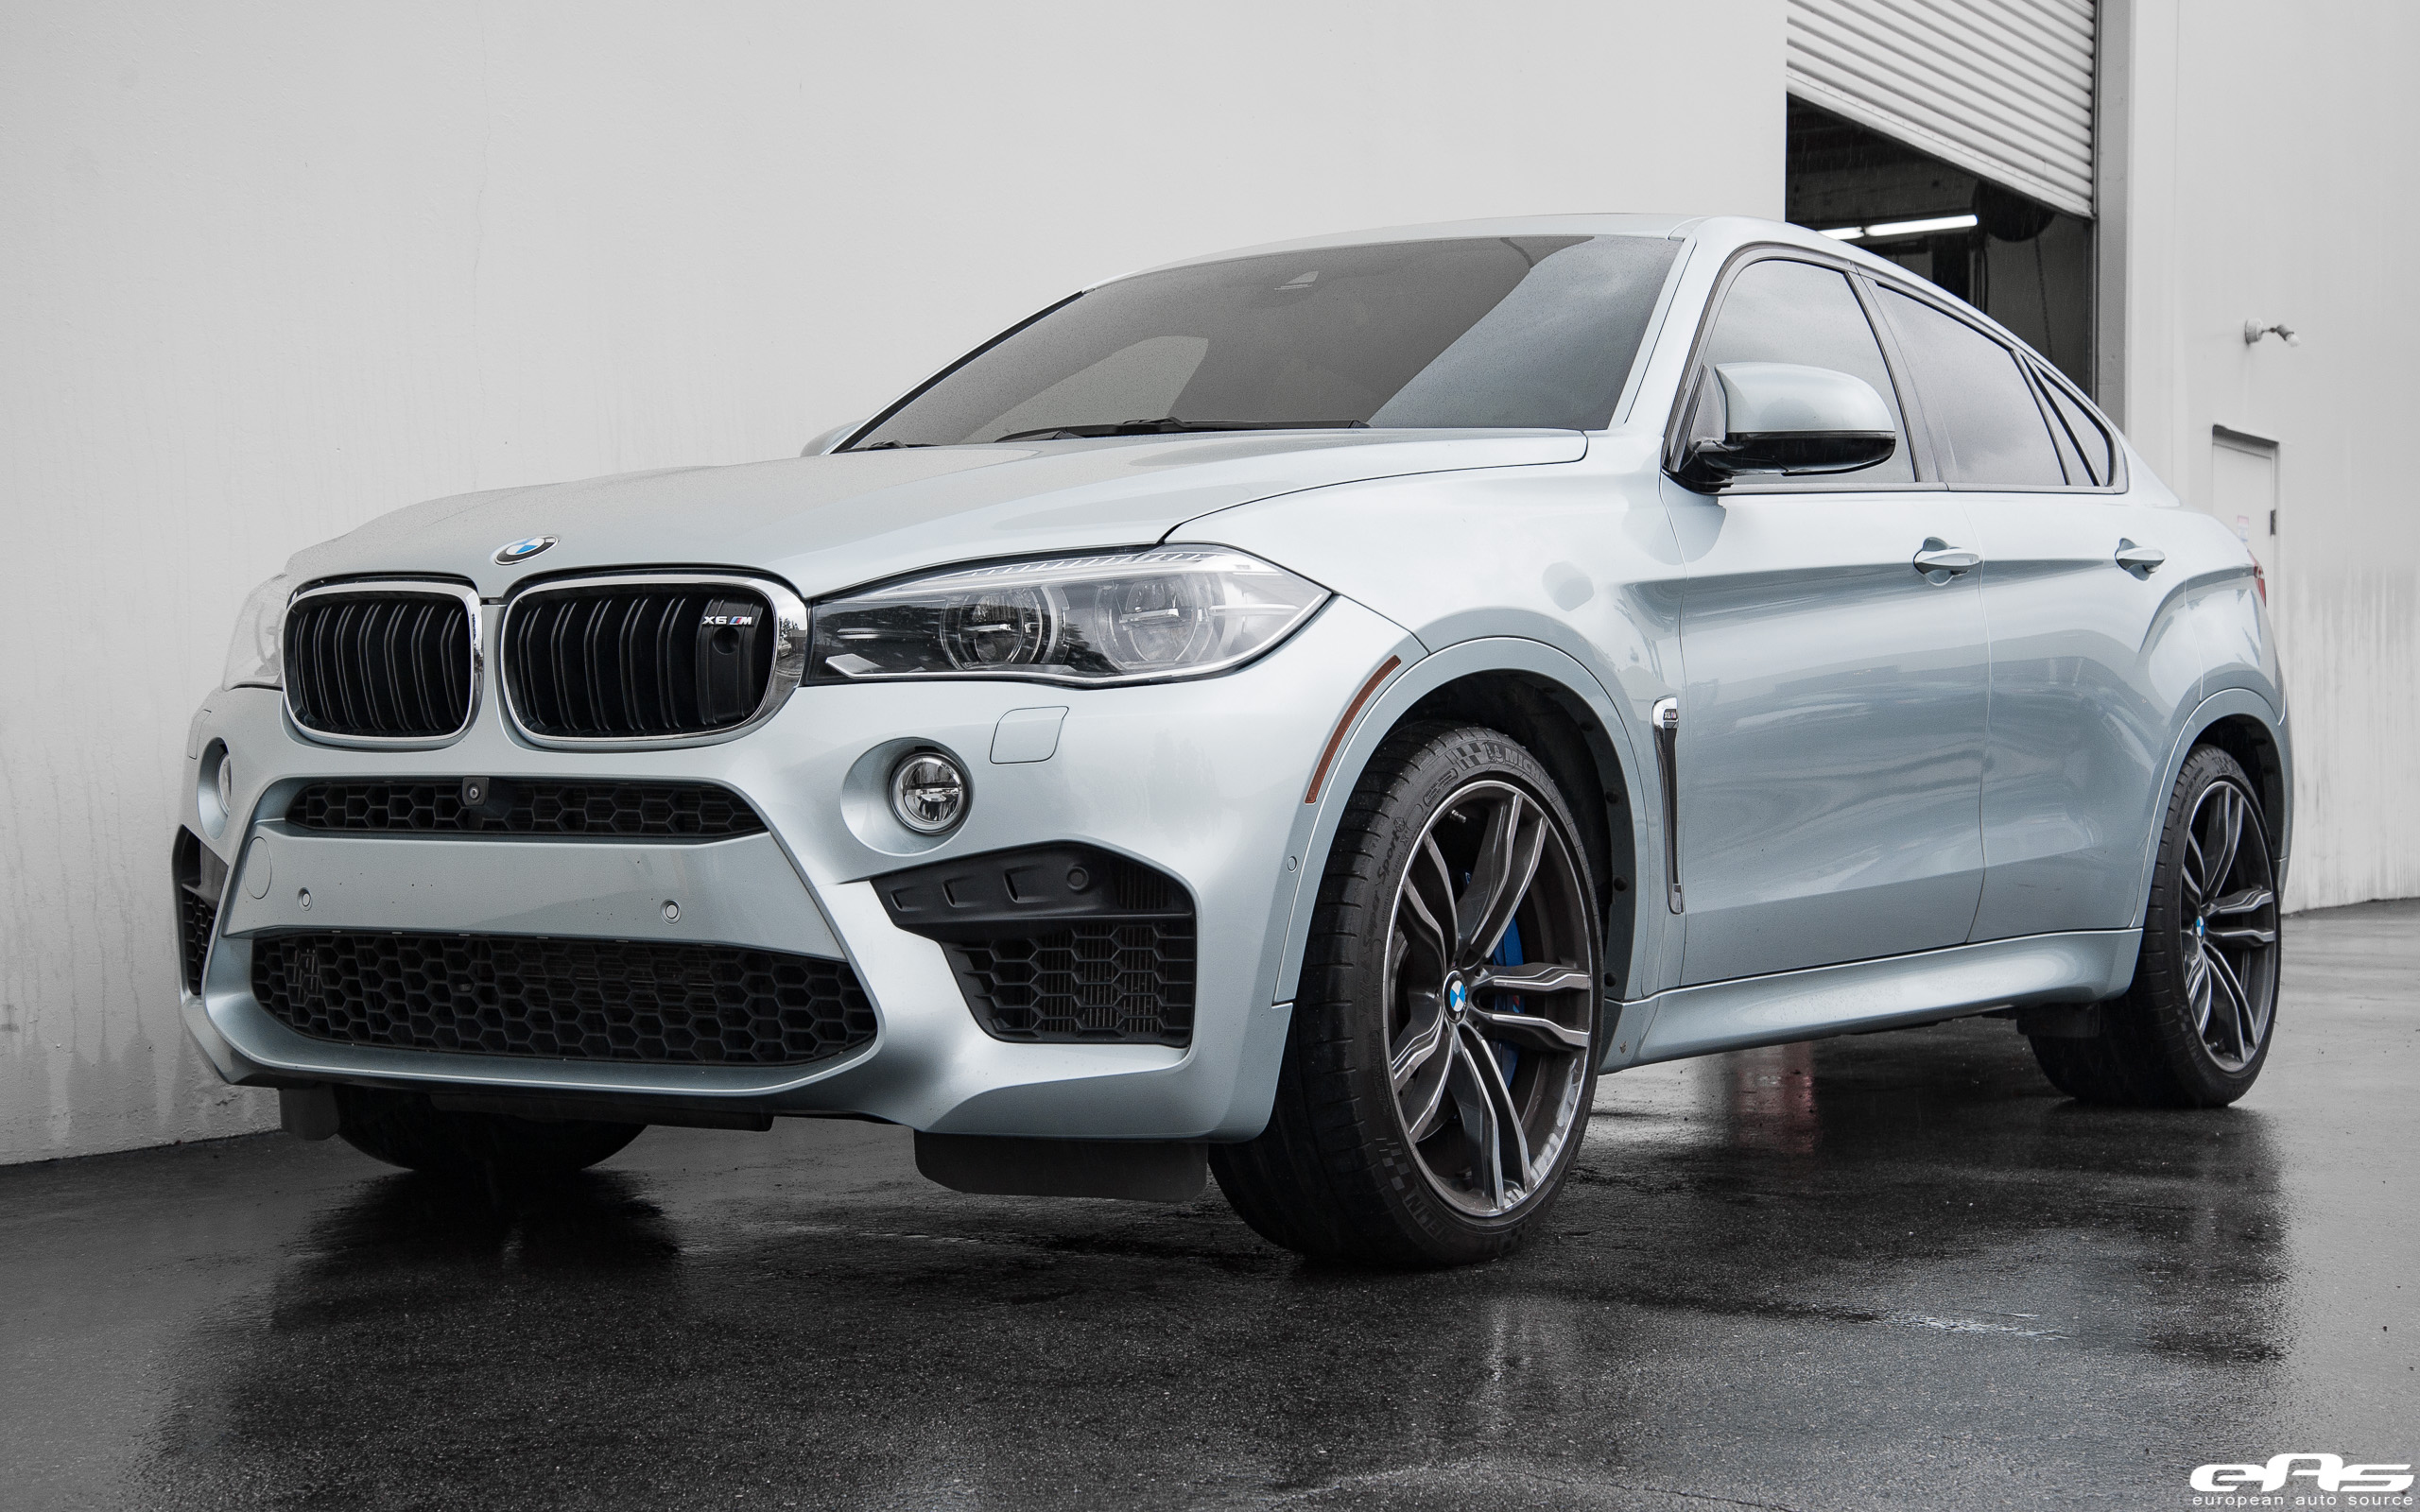 Silverstone Metallic Bmw X6 M Gets Lowered By European